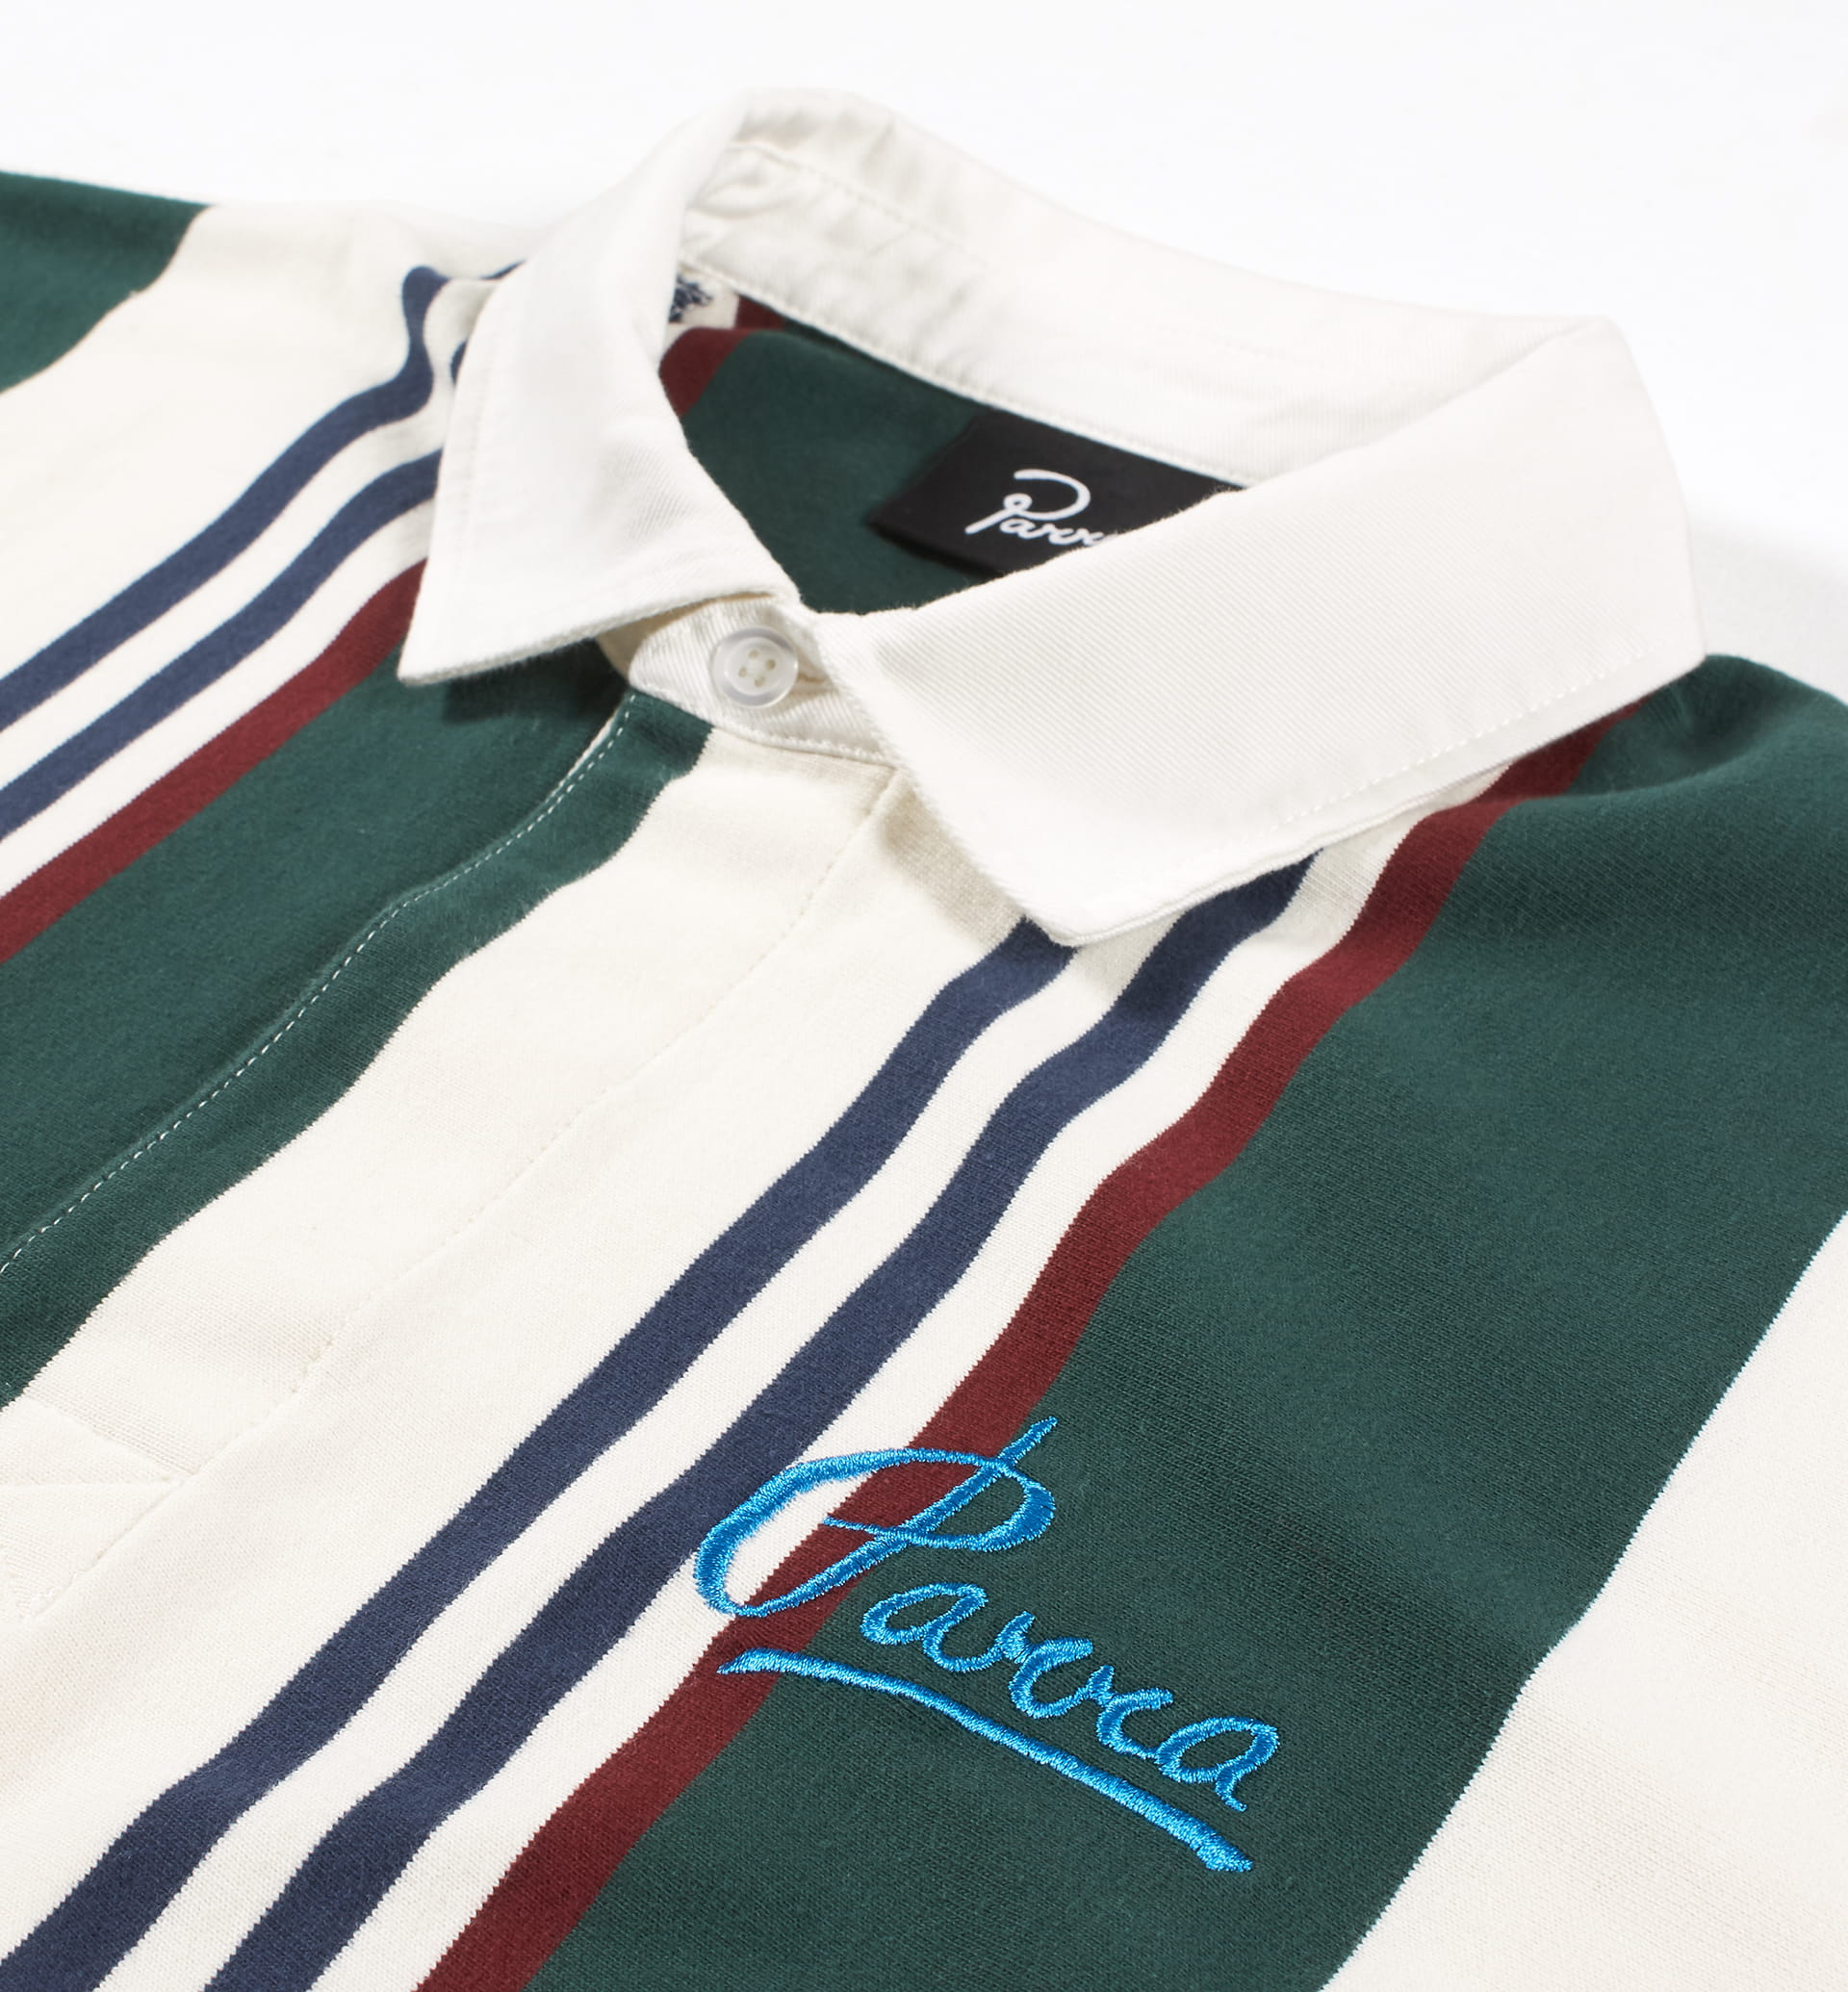 Parra - split personality rugby shirt